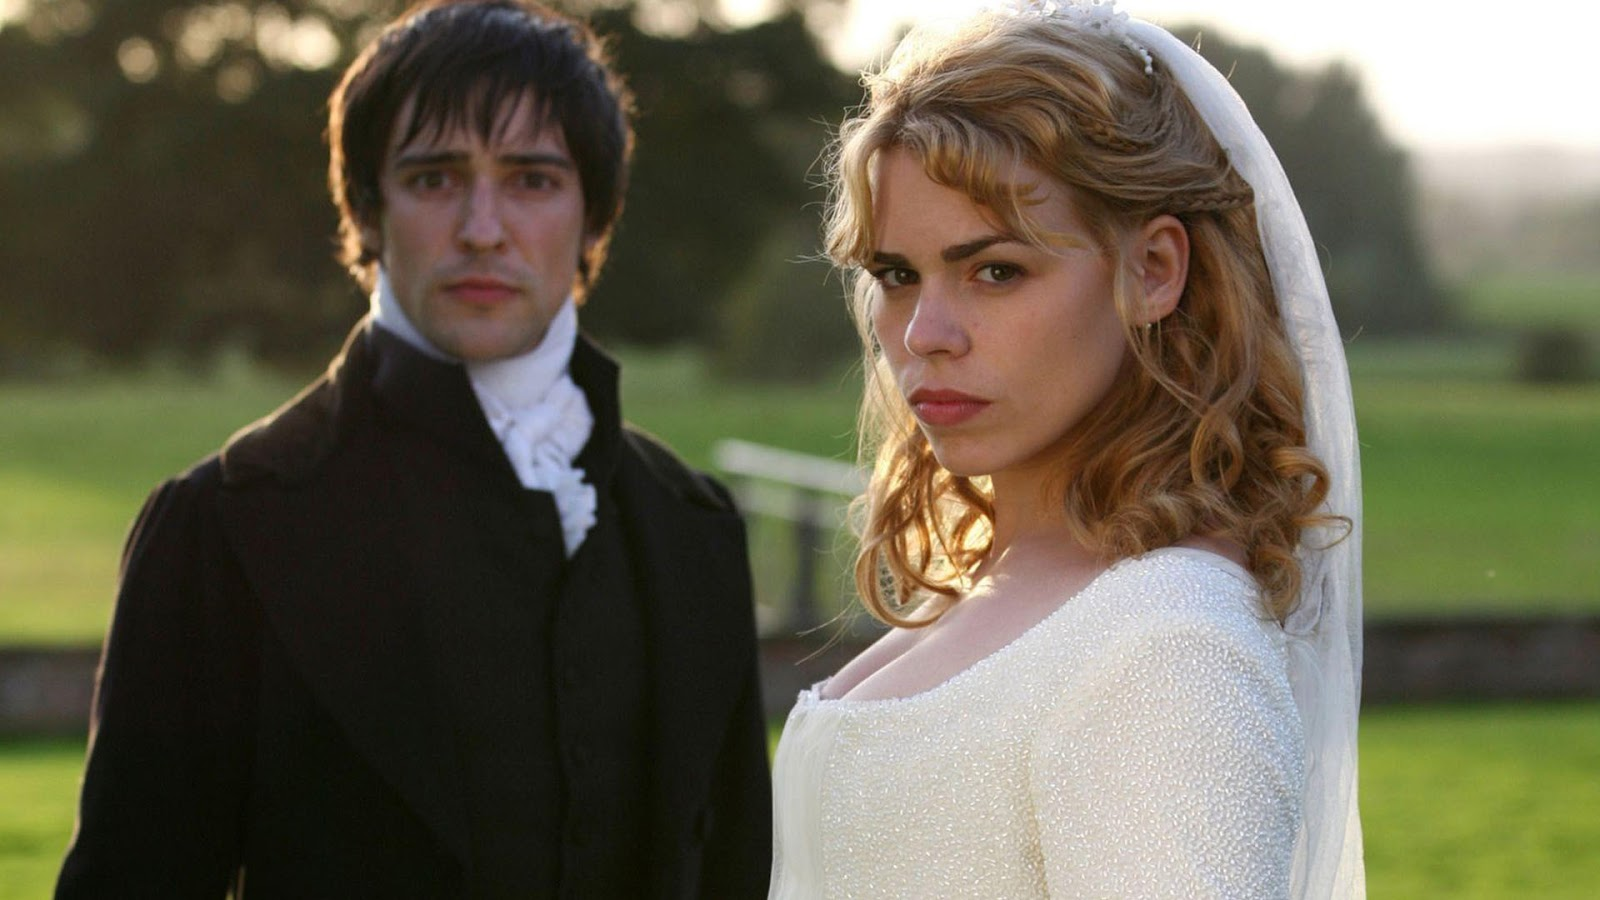 mansfield park 2007 blake ritson and billie piper